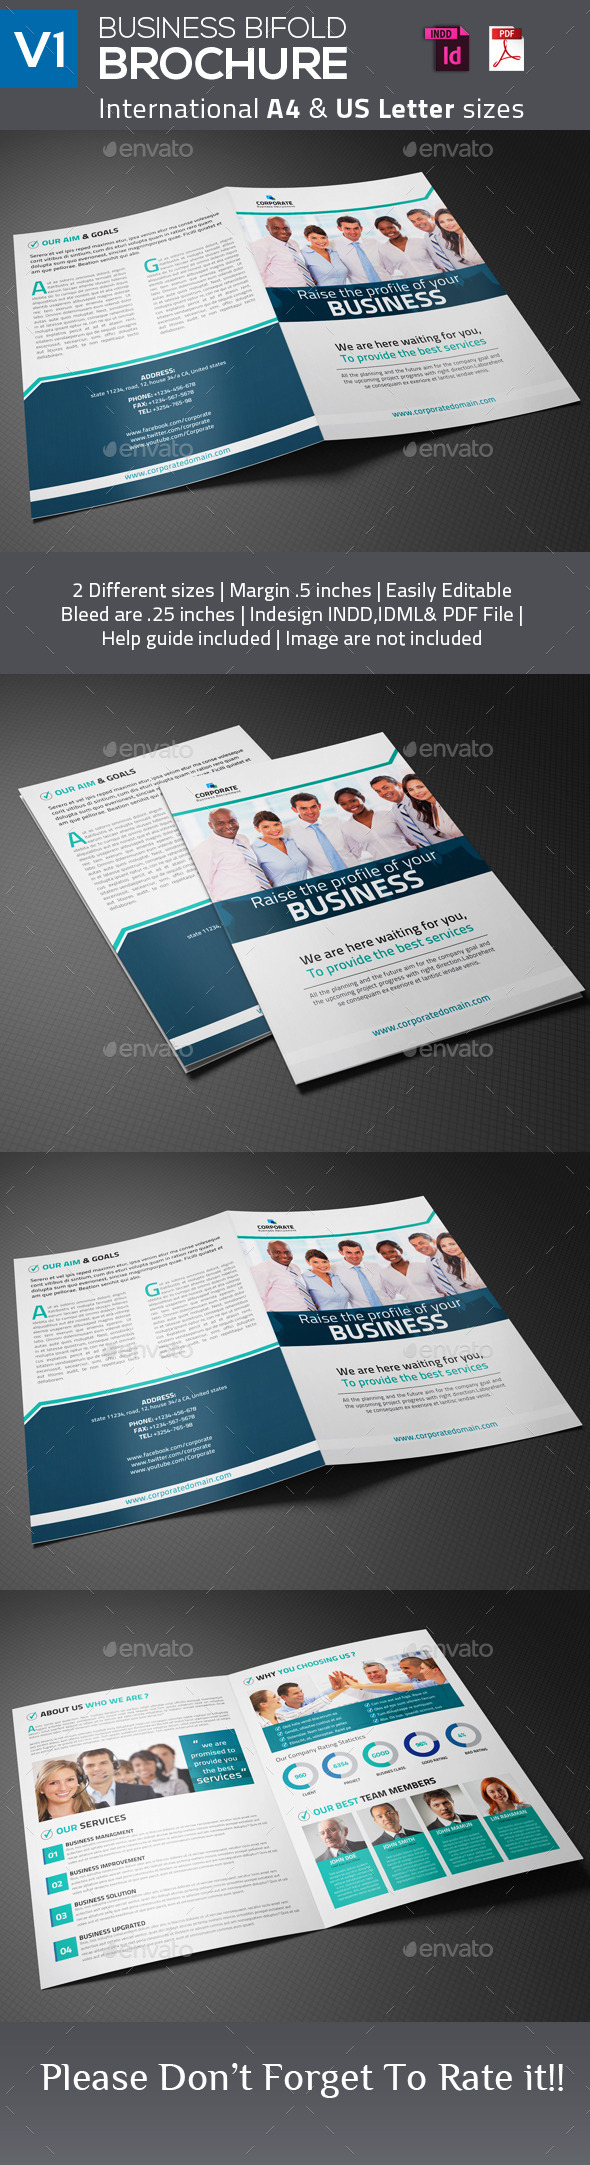 Business Bifold Brochure V1